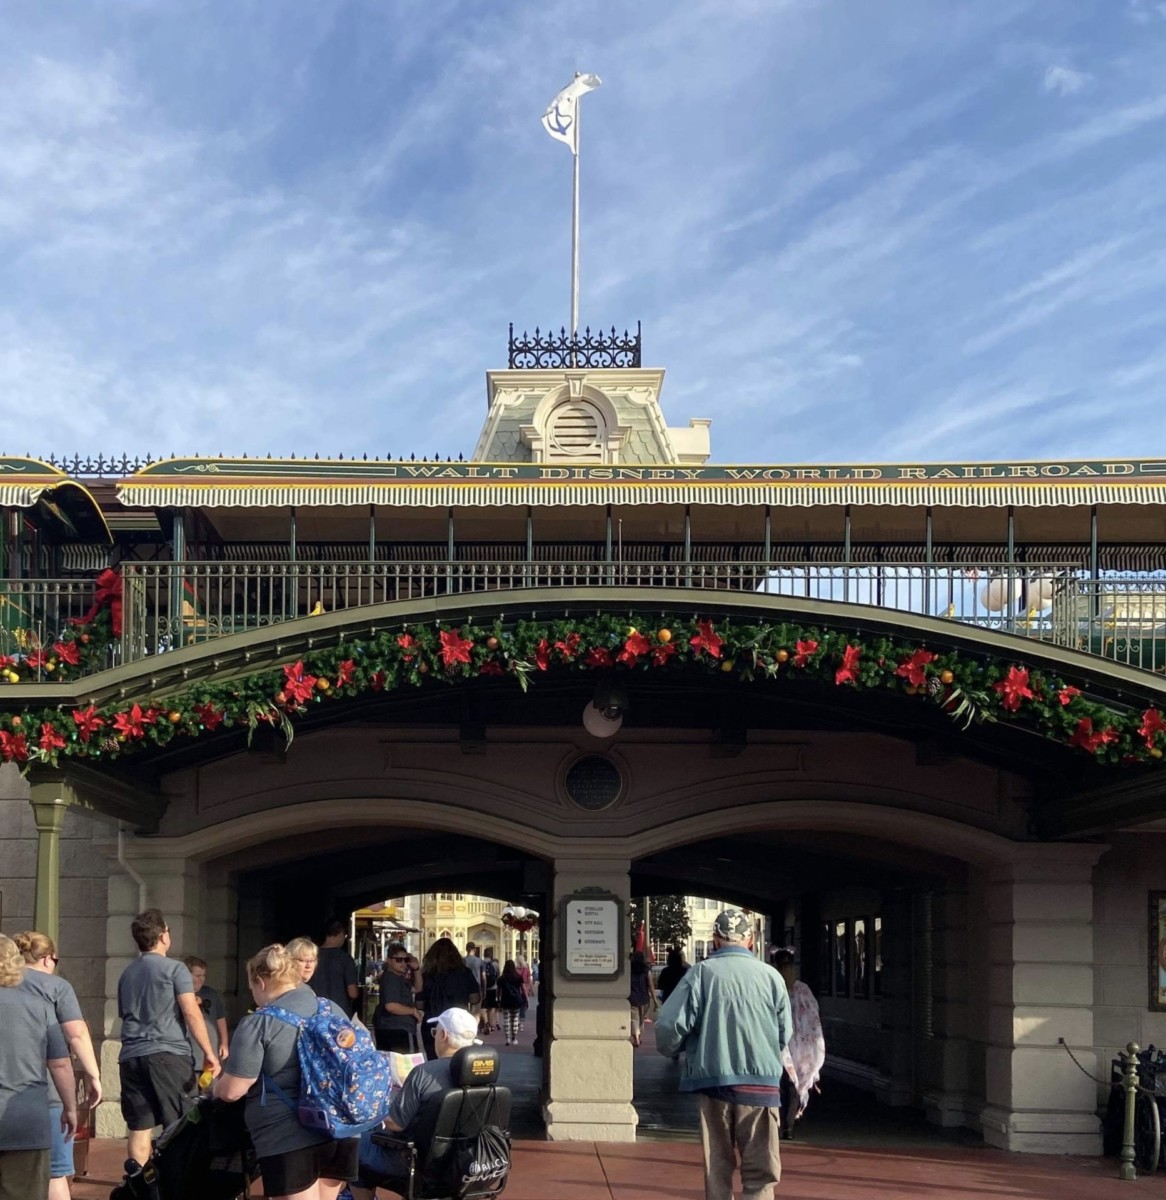 Christmas is Here at Disney's Magic Kingdom! #disneyholidays 2